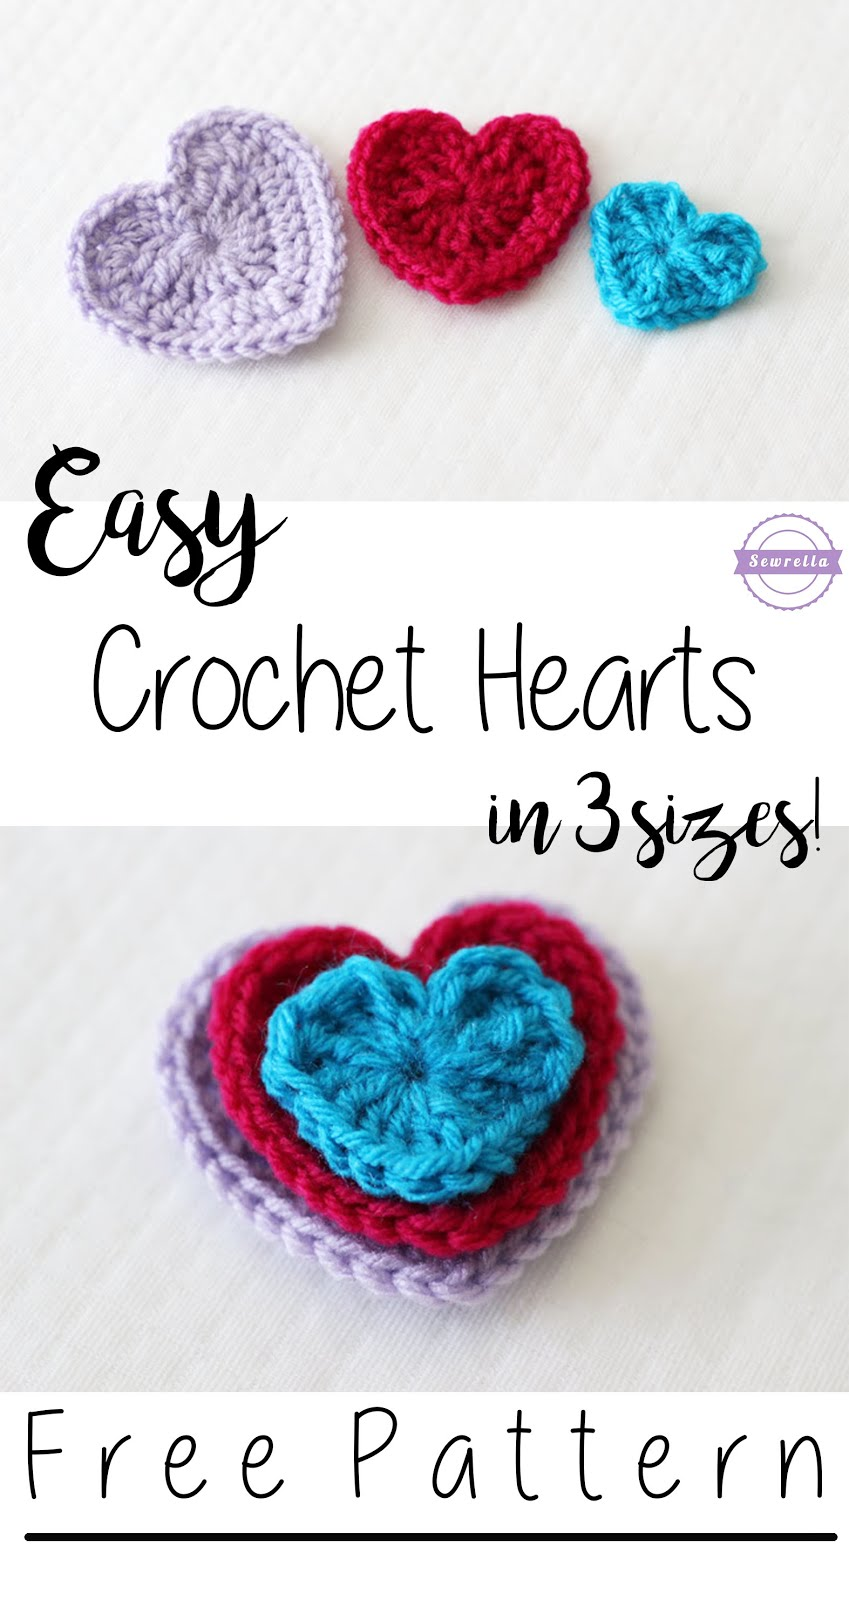 Easy Crochet Hearts - 3 Sizes - Sewrella